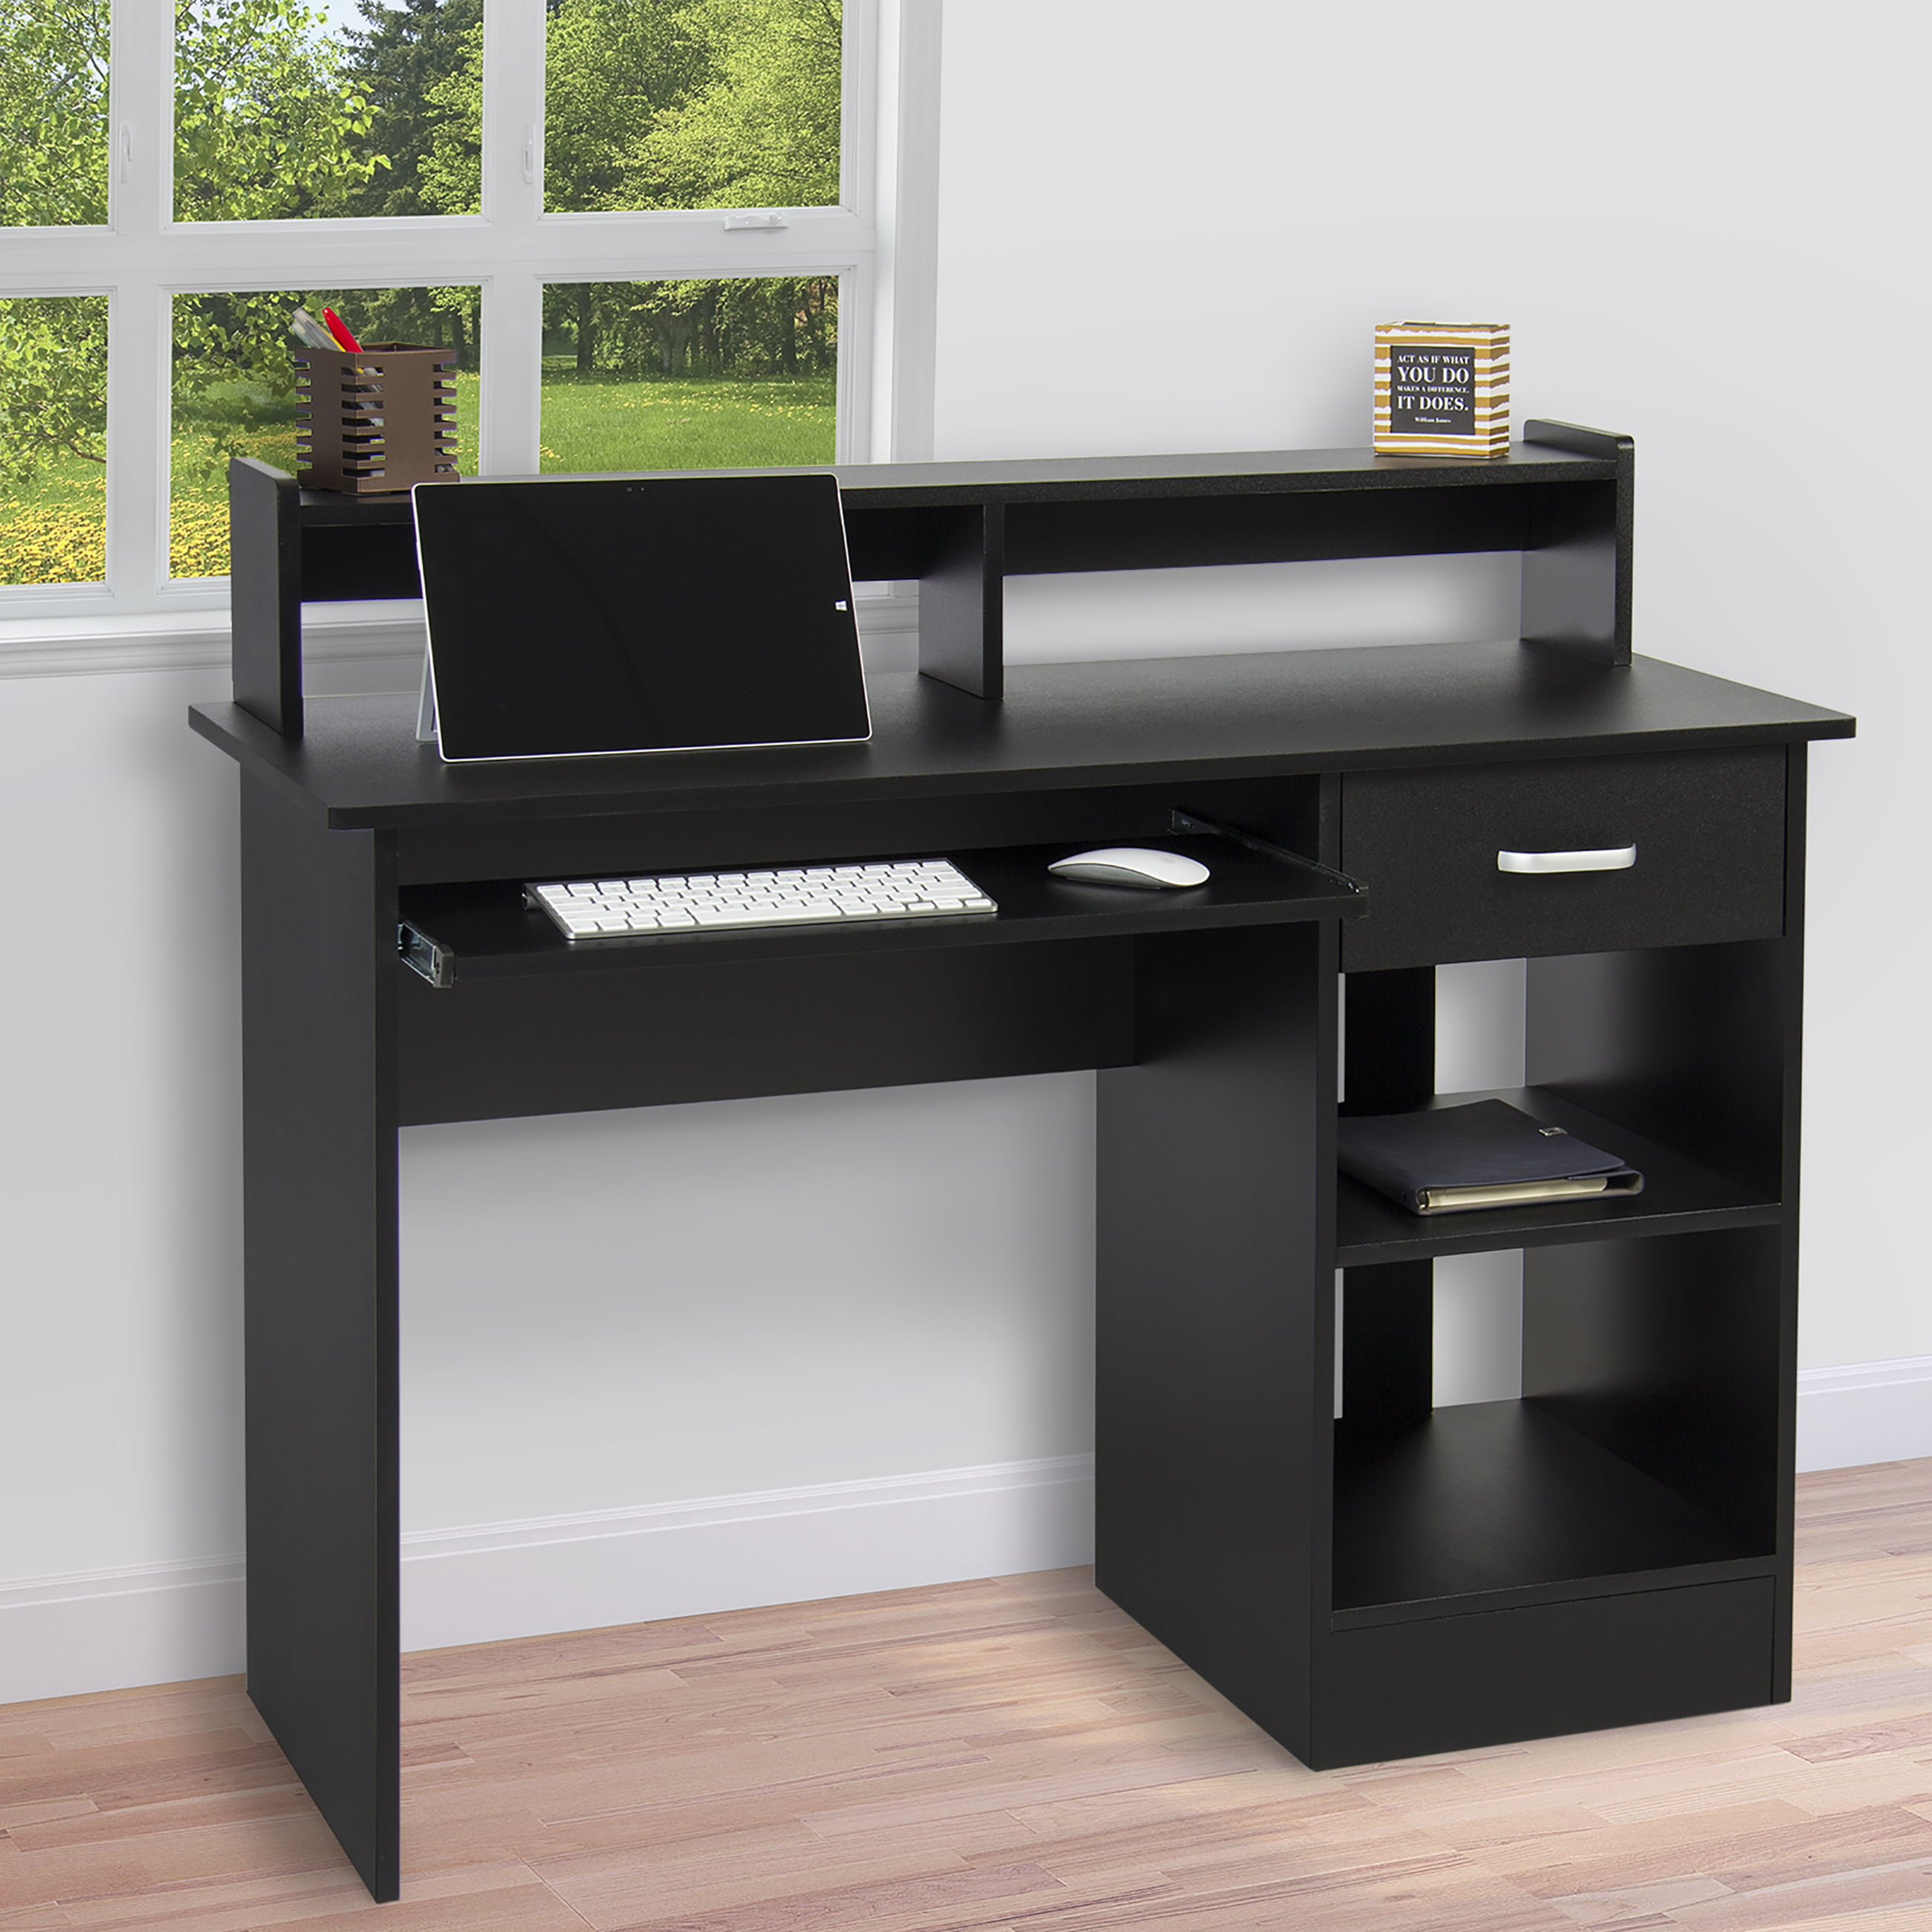 work desks home. computer desk home laptop table college office furniture work station blk walmartcom desks i